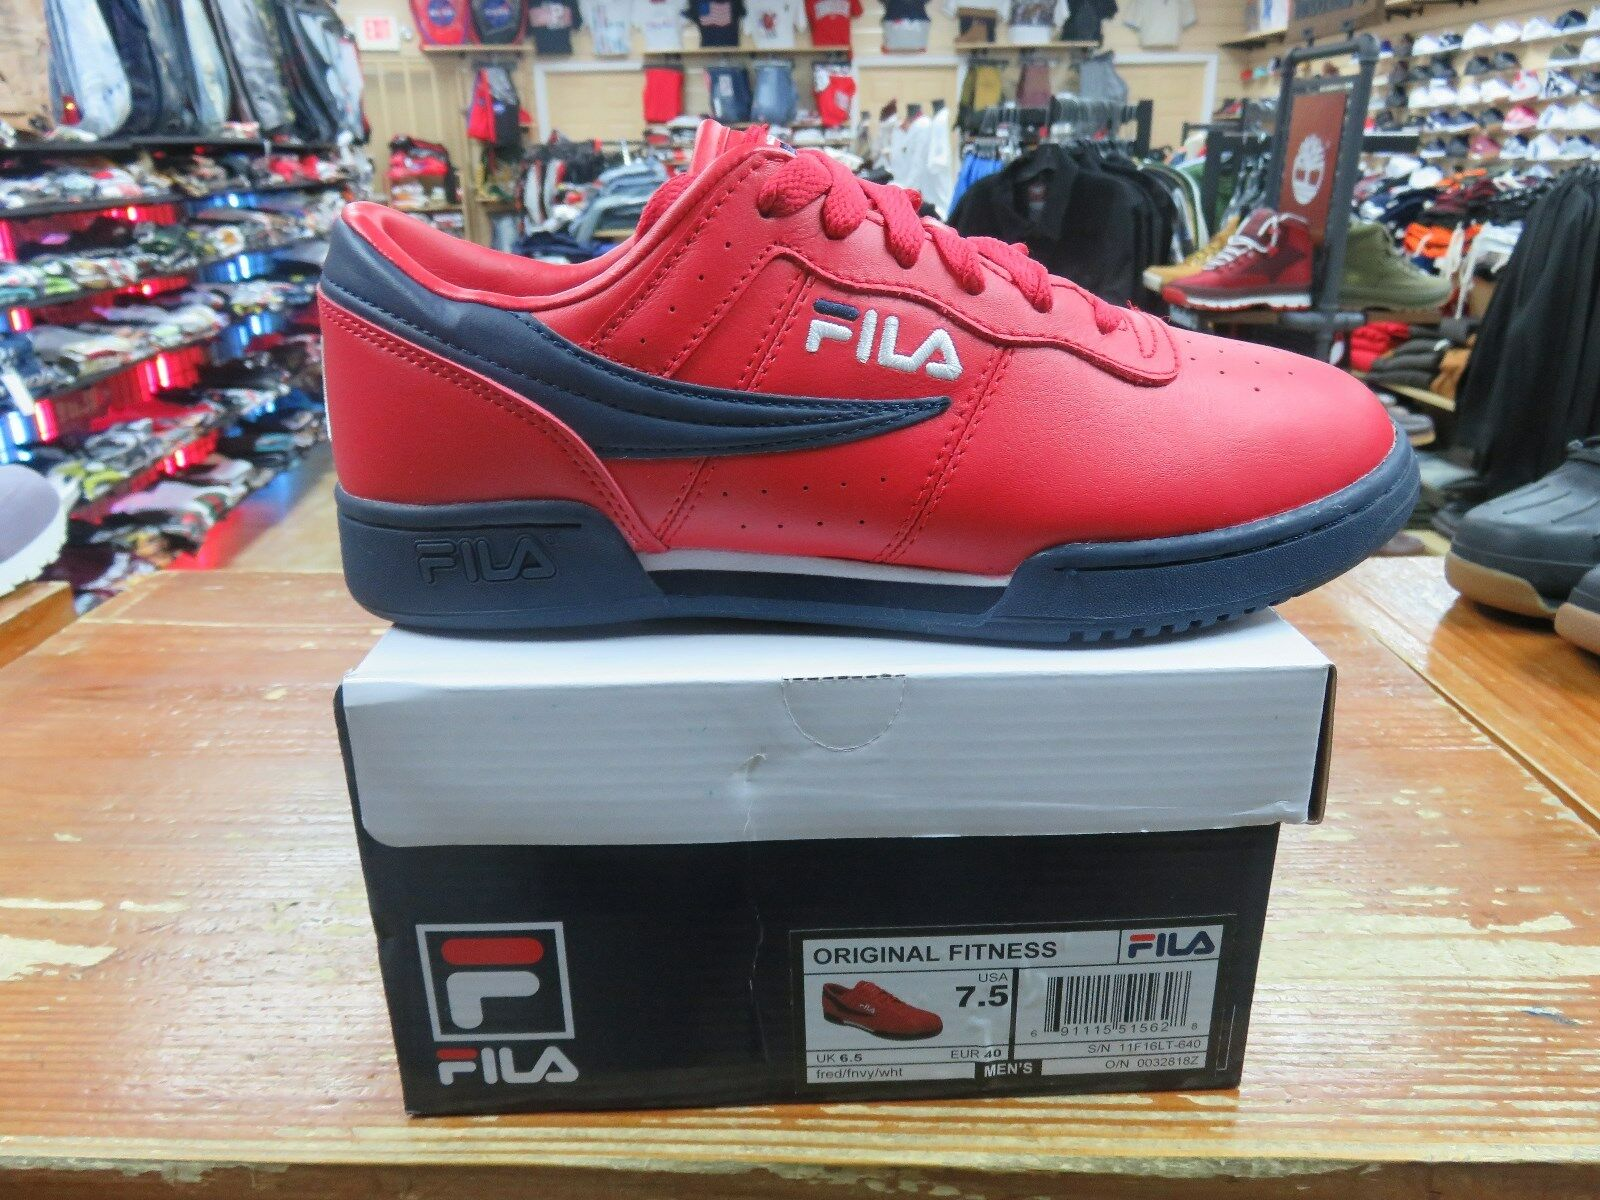 MENS LOW FILA. ORIGINAL FITNESS FRED FNVY WHT